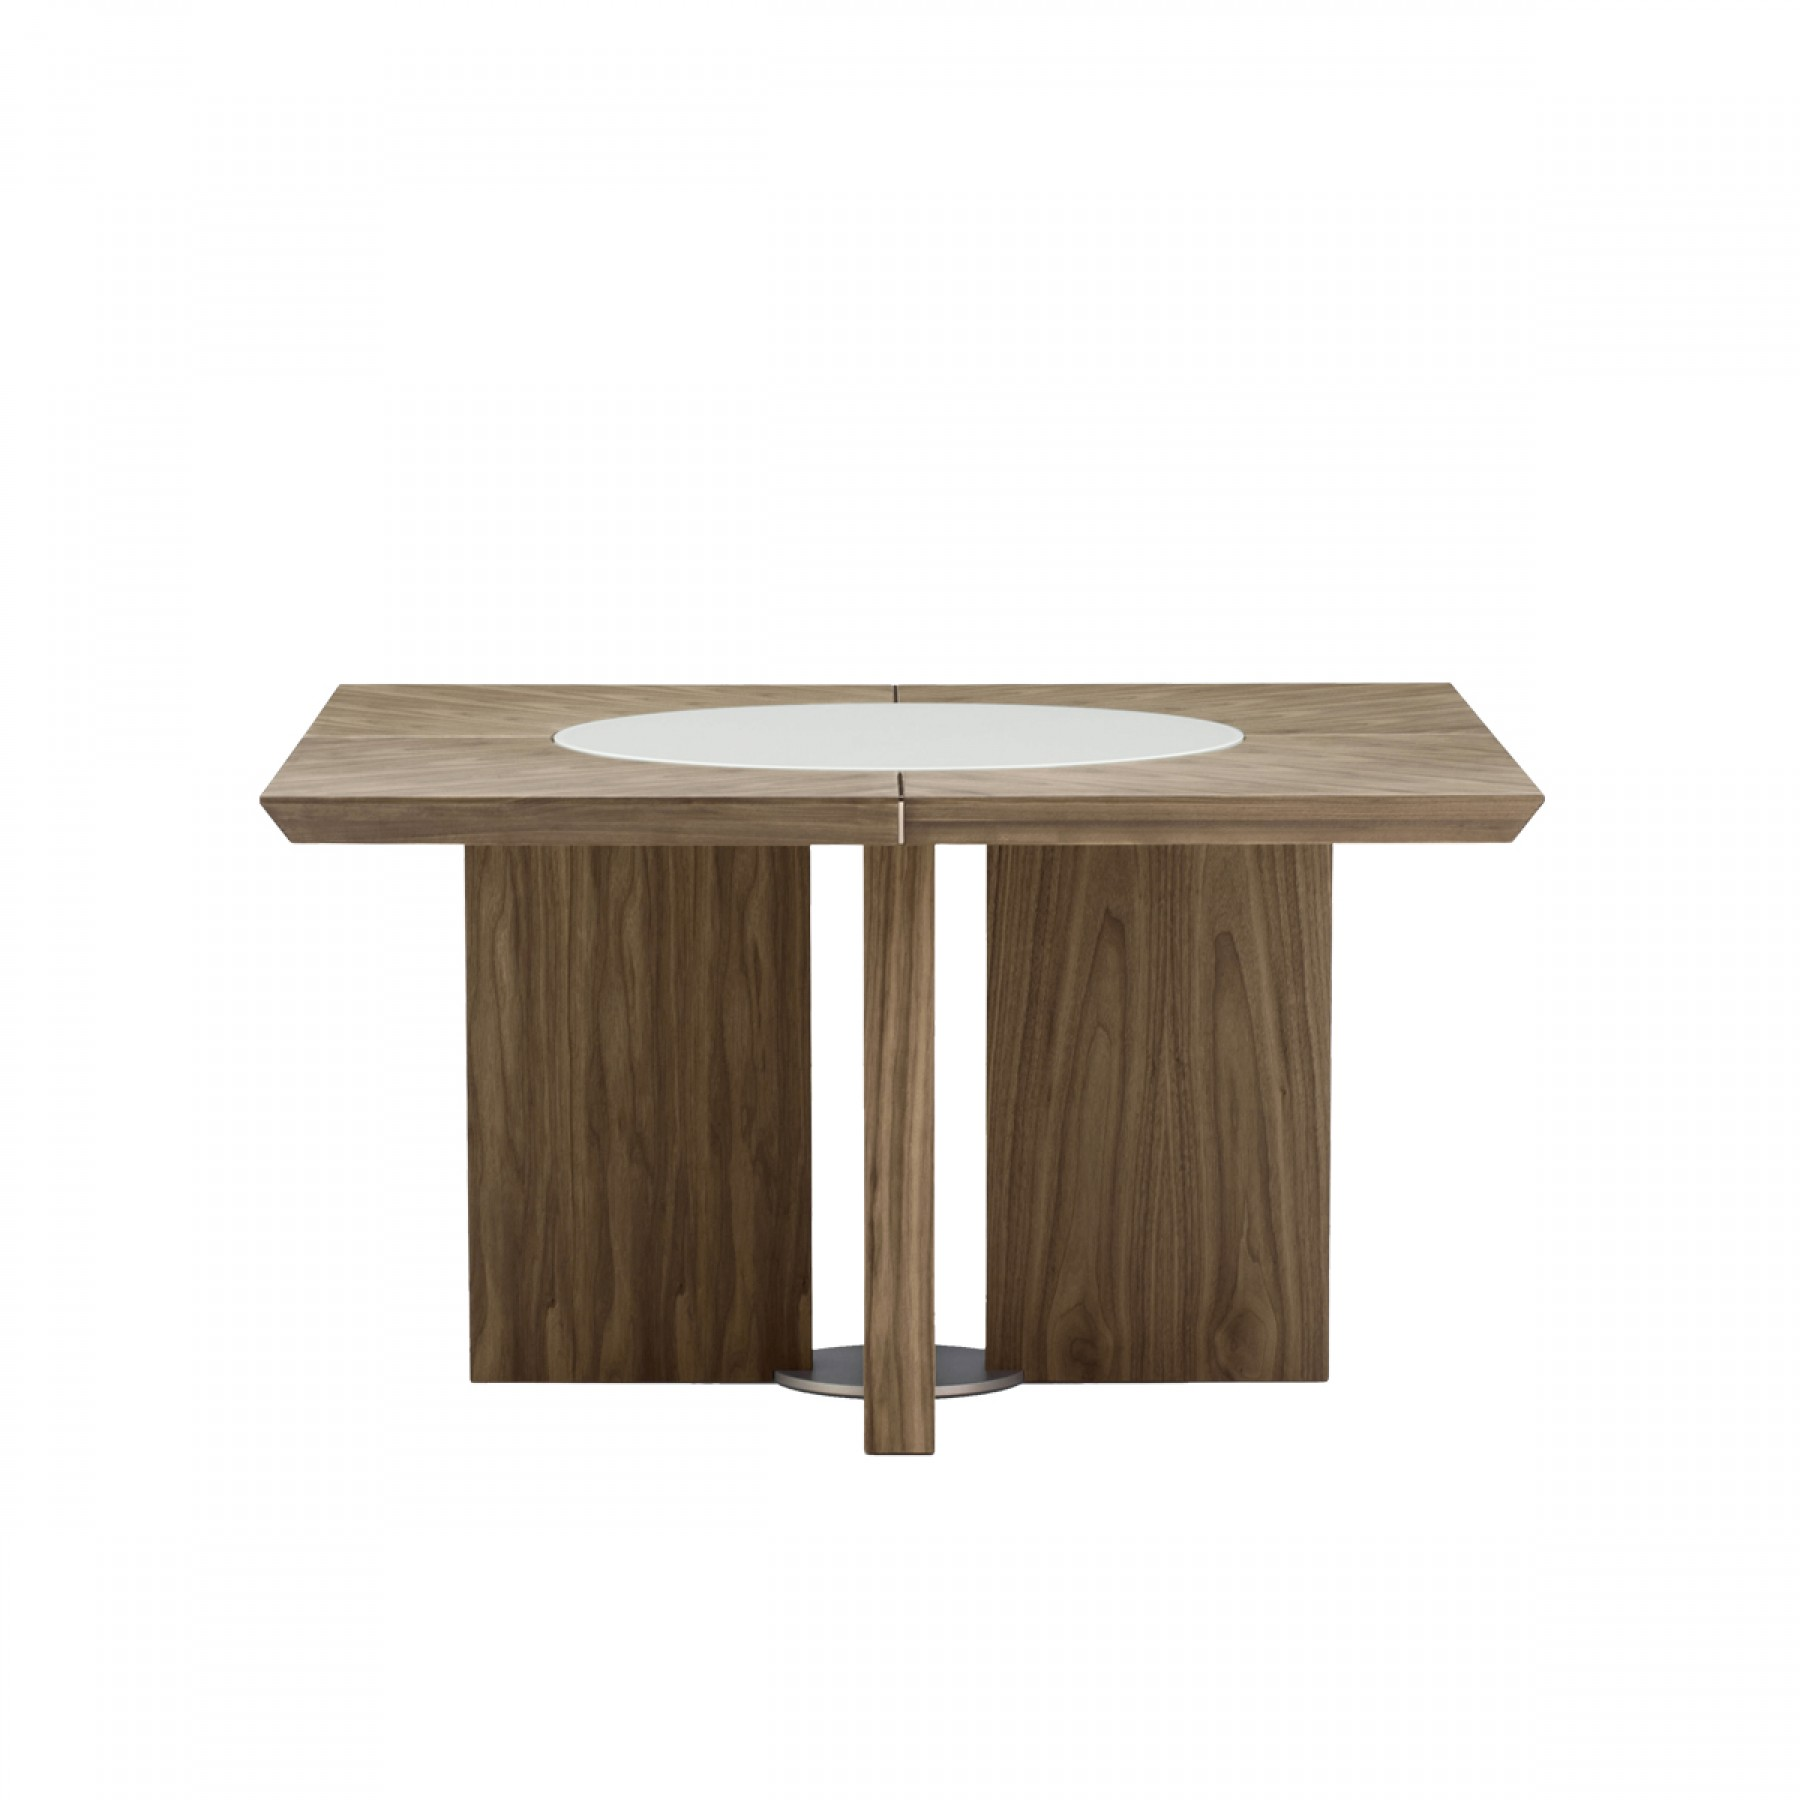 Midollo walnut square dining table beyond furniture for Square dining table